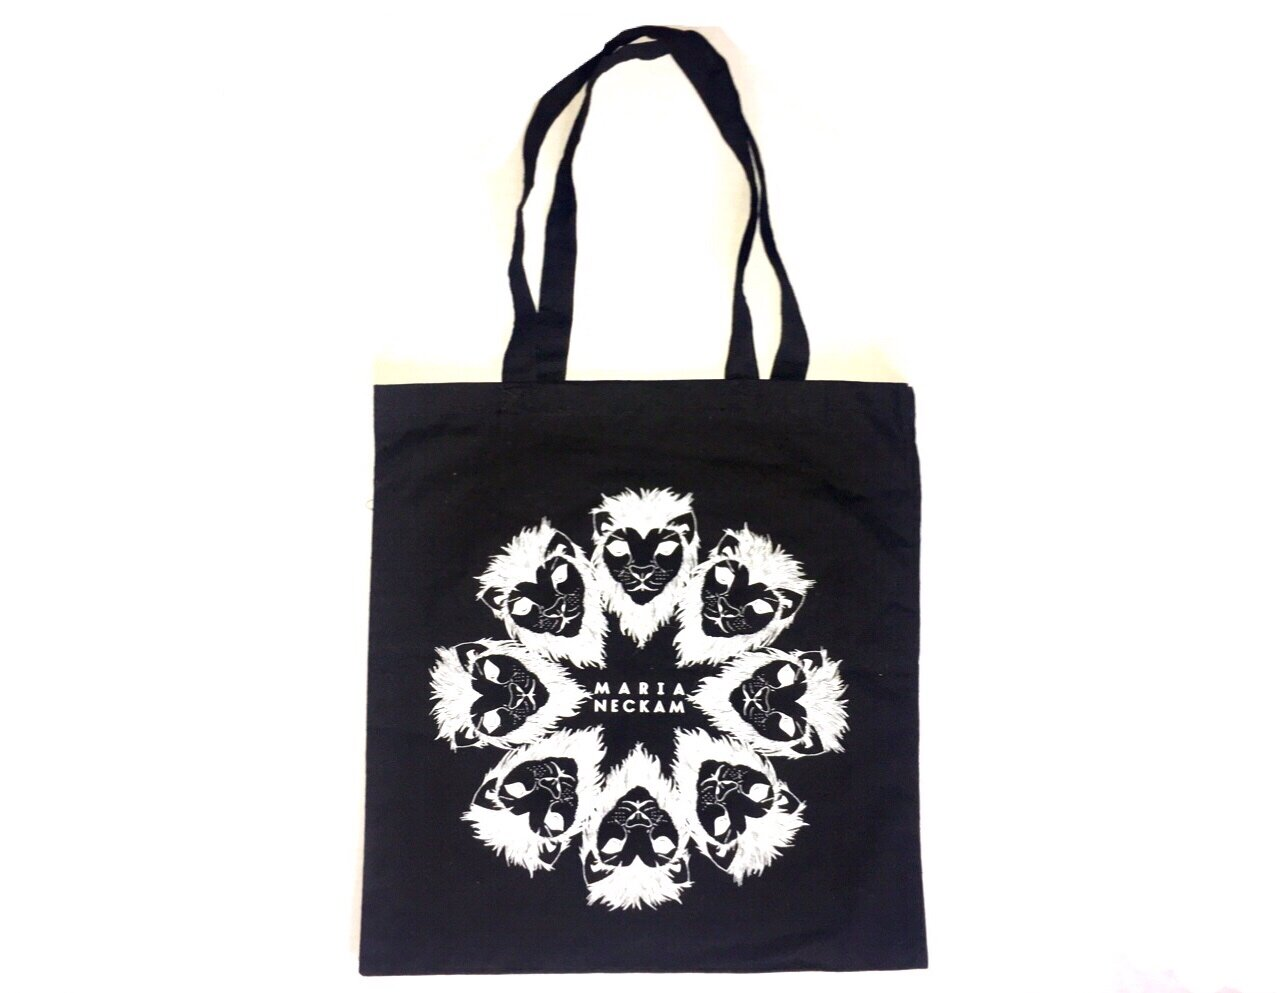 Maria Neckam Black Tote Bag - $20Available in black & natural (off-white) color.Screen-printed in Brooklyn.Multifunctional! Rock it as your all-around bag, grocery shopping bag, or drum-stick-carrier ...